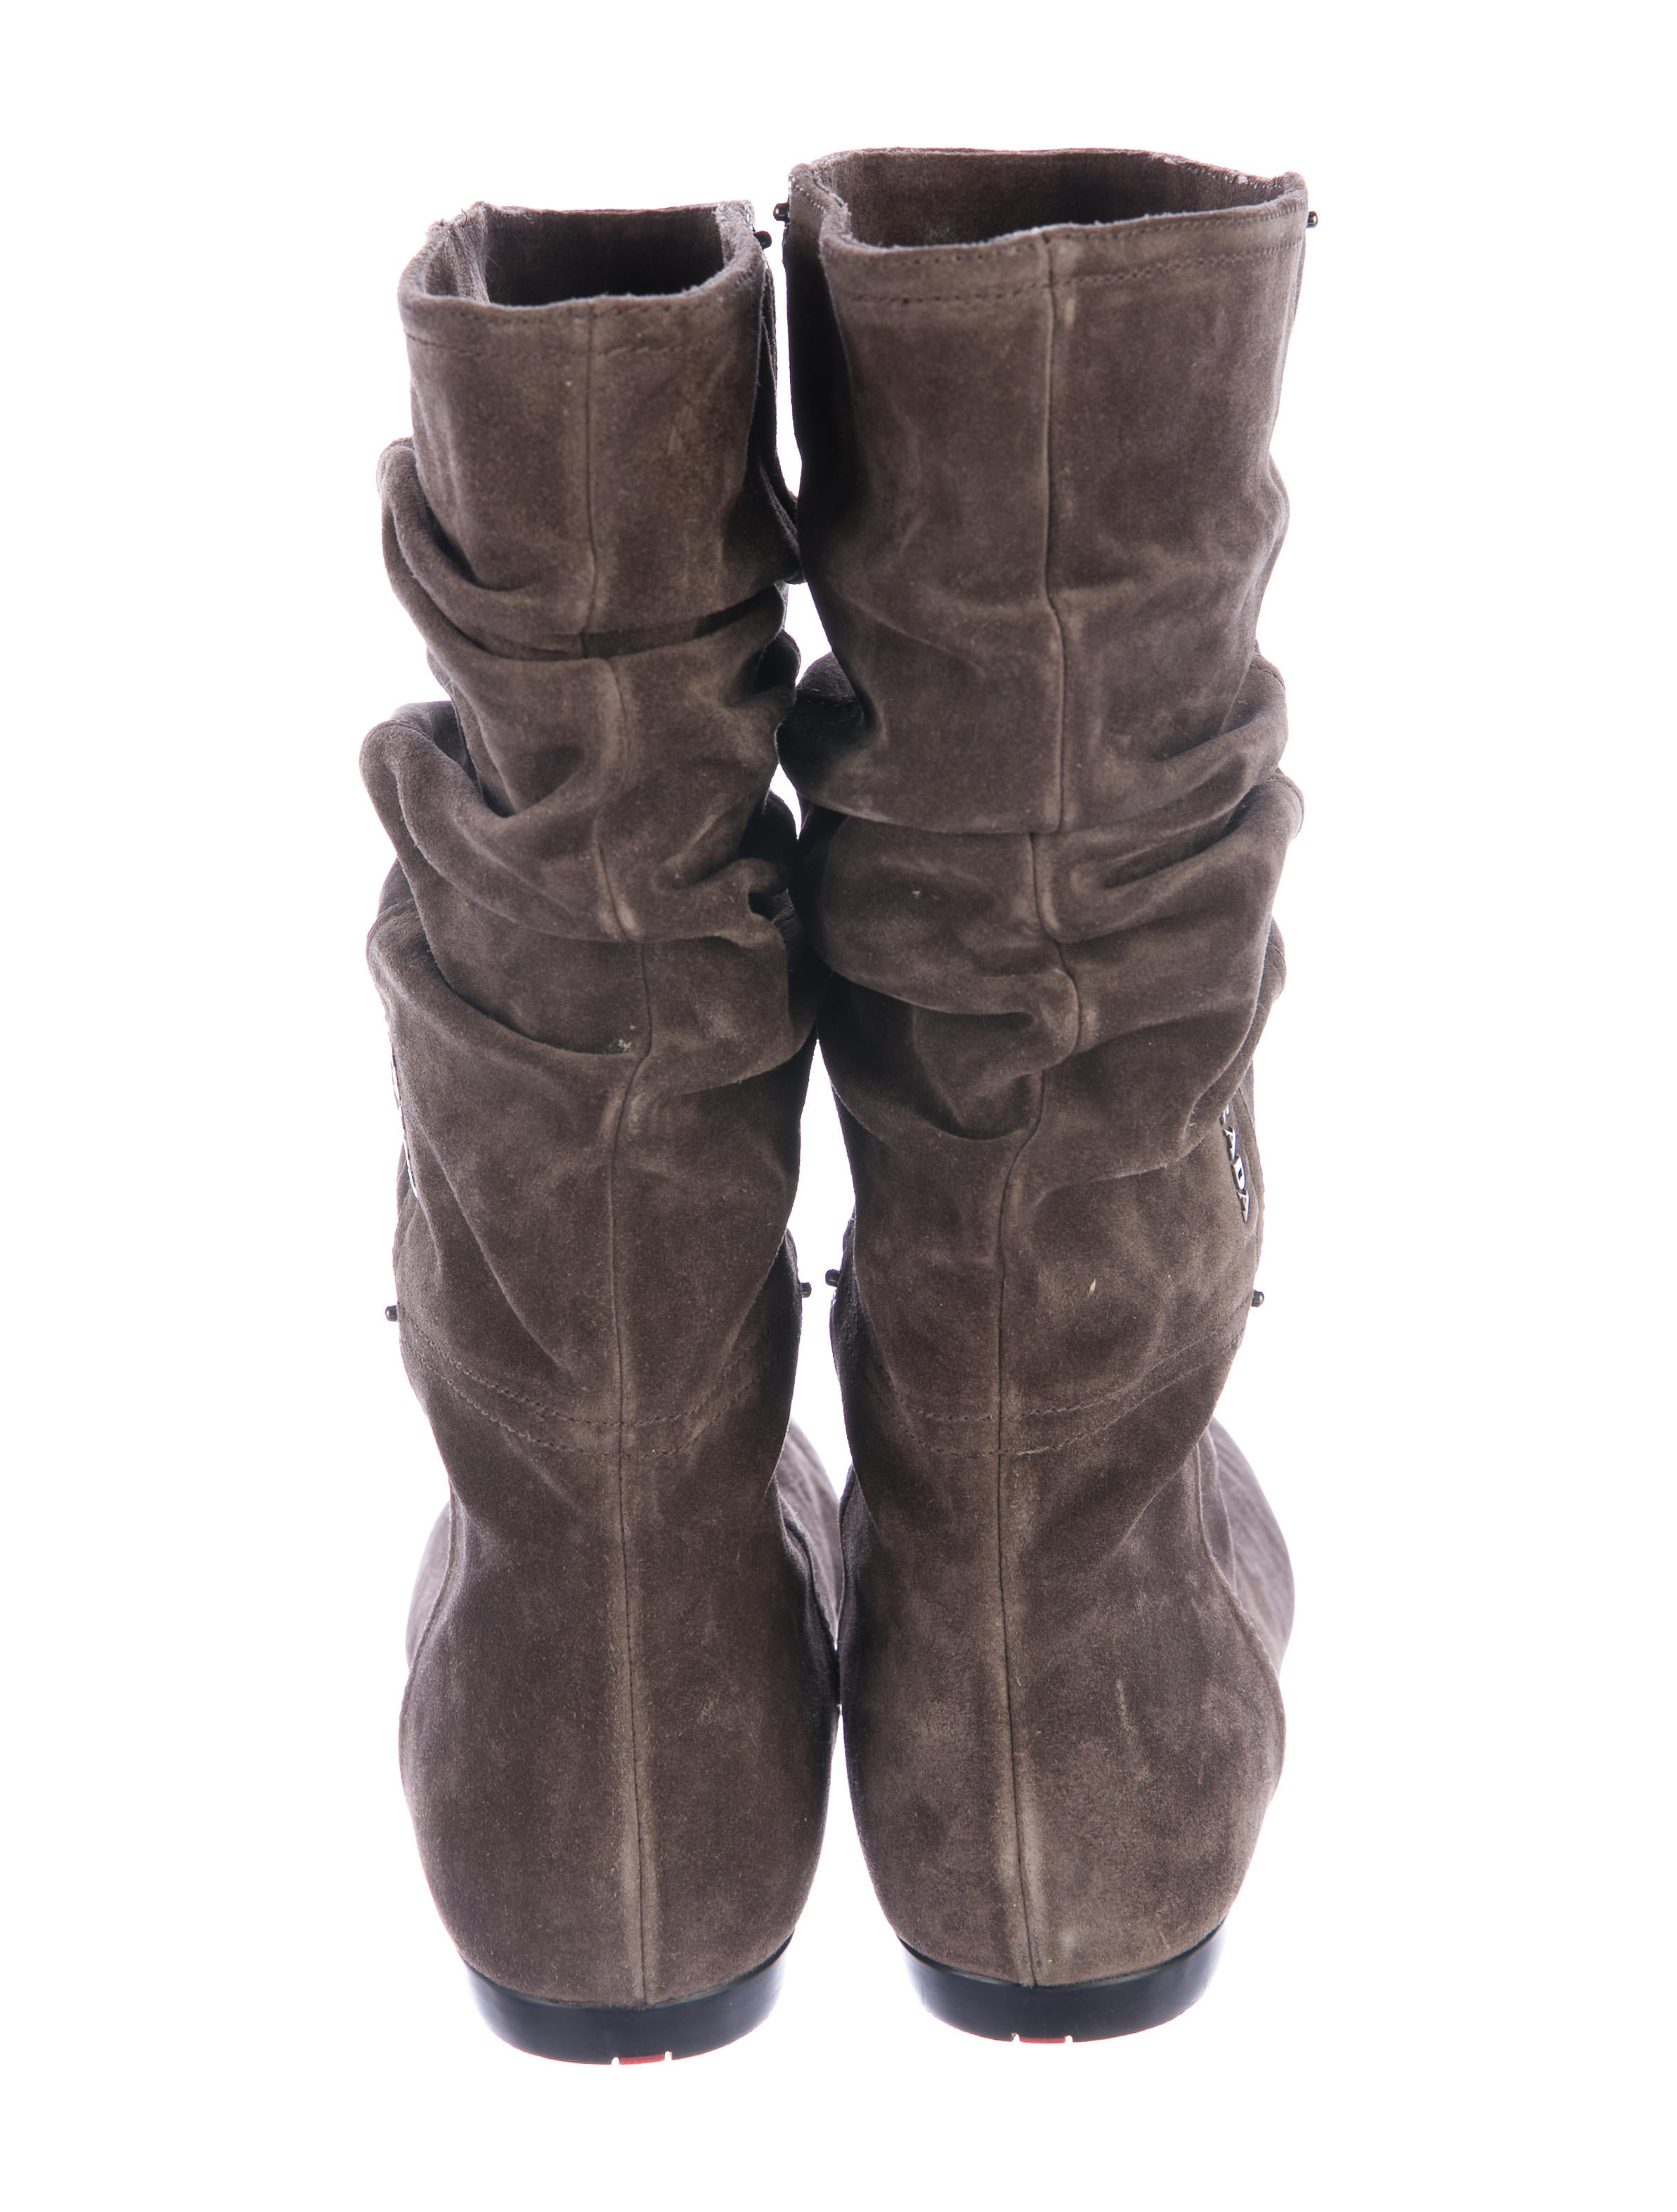 prada ruched suede boots shoes pra157181 the realreal